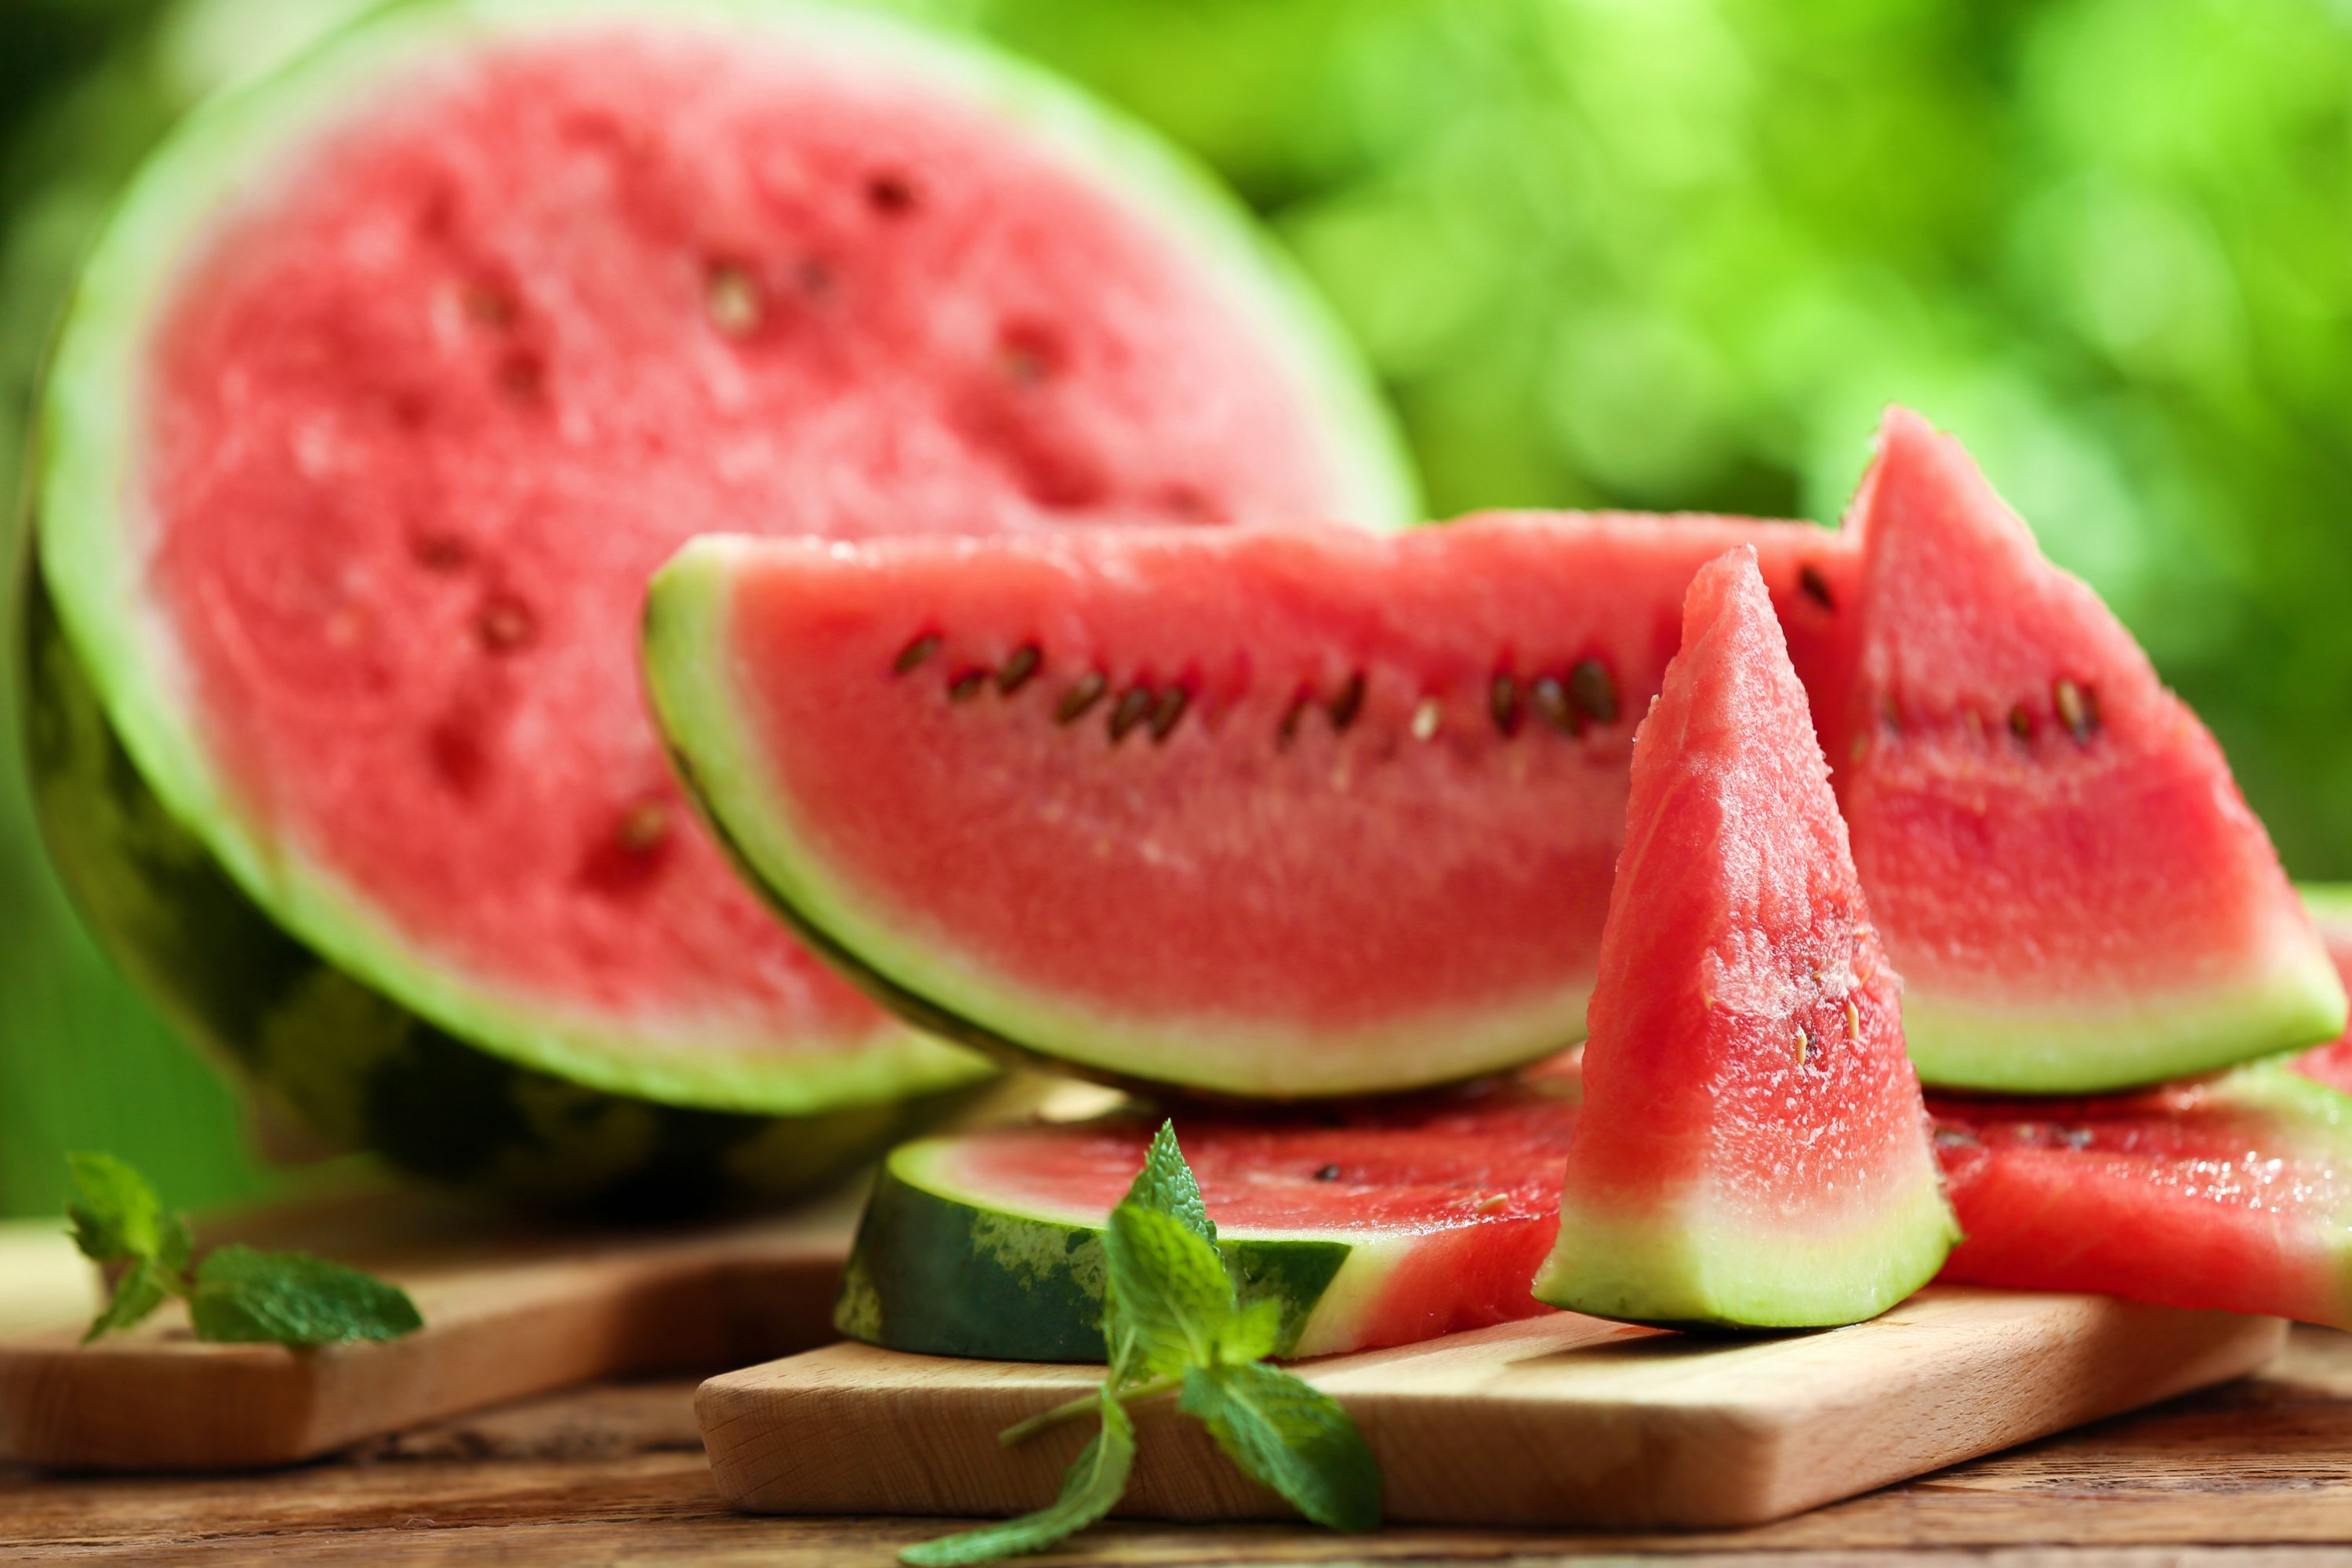 Watermelon is a great fruit for quenching thirst while also providing important nutrients like fiber, magnesium, potassium, and vitamin C. (Shutterstock Photo)